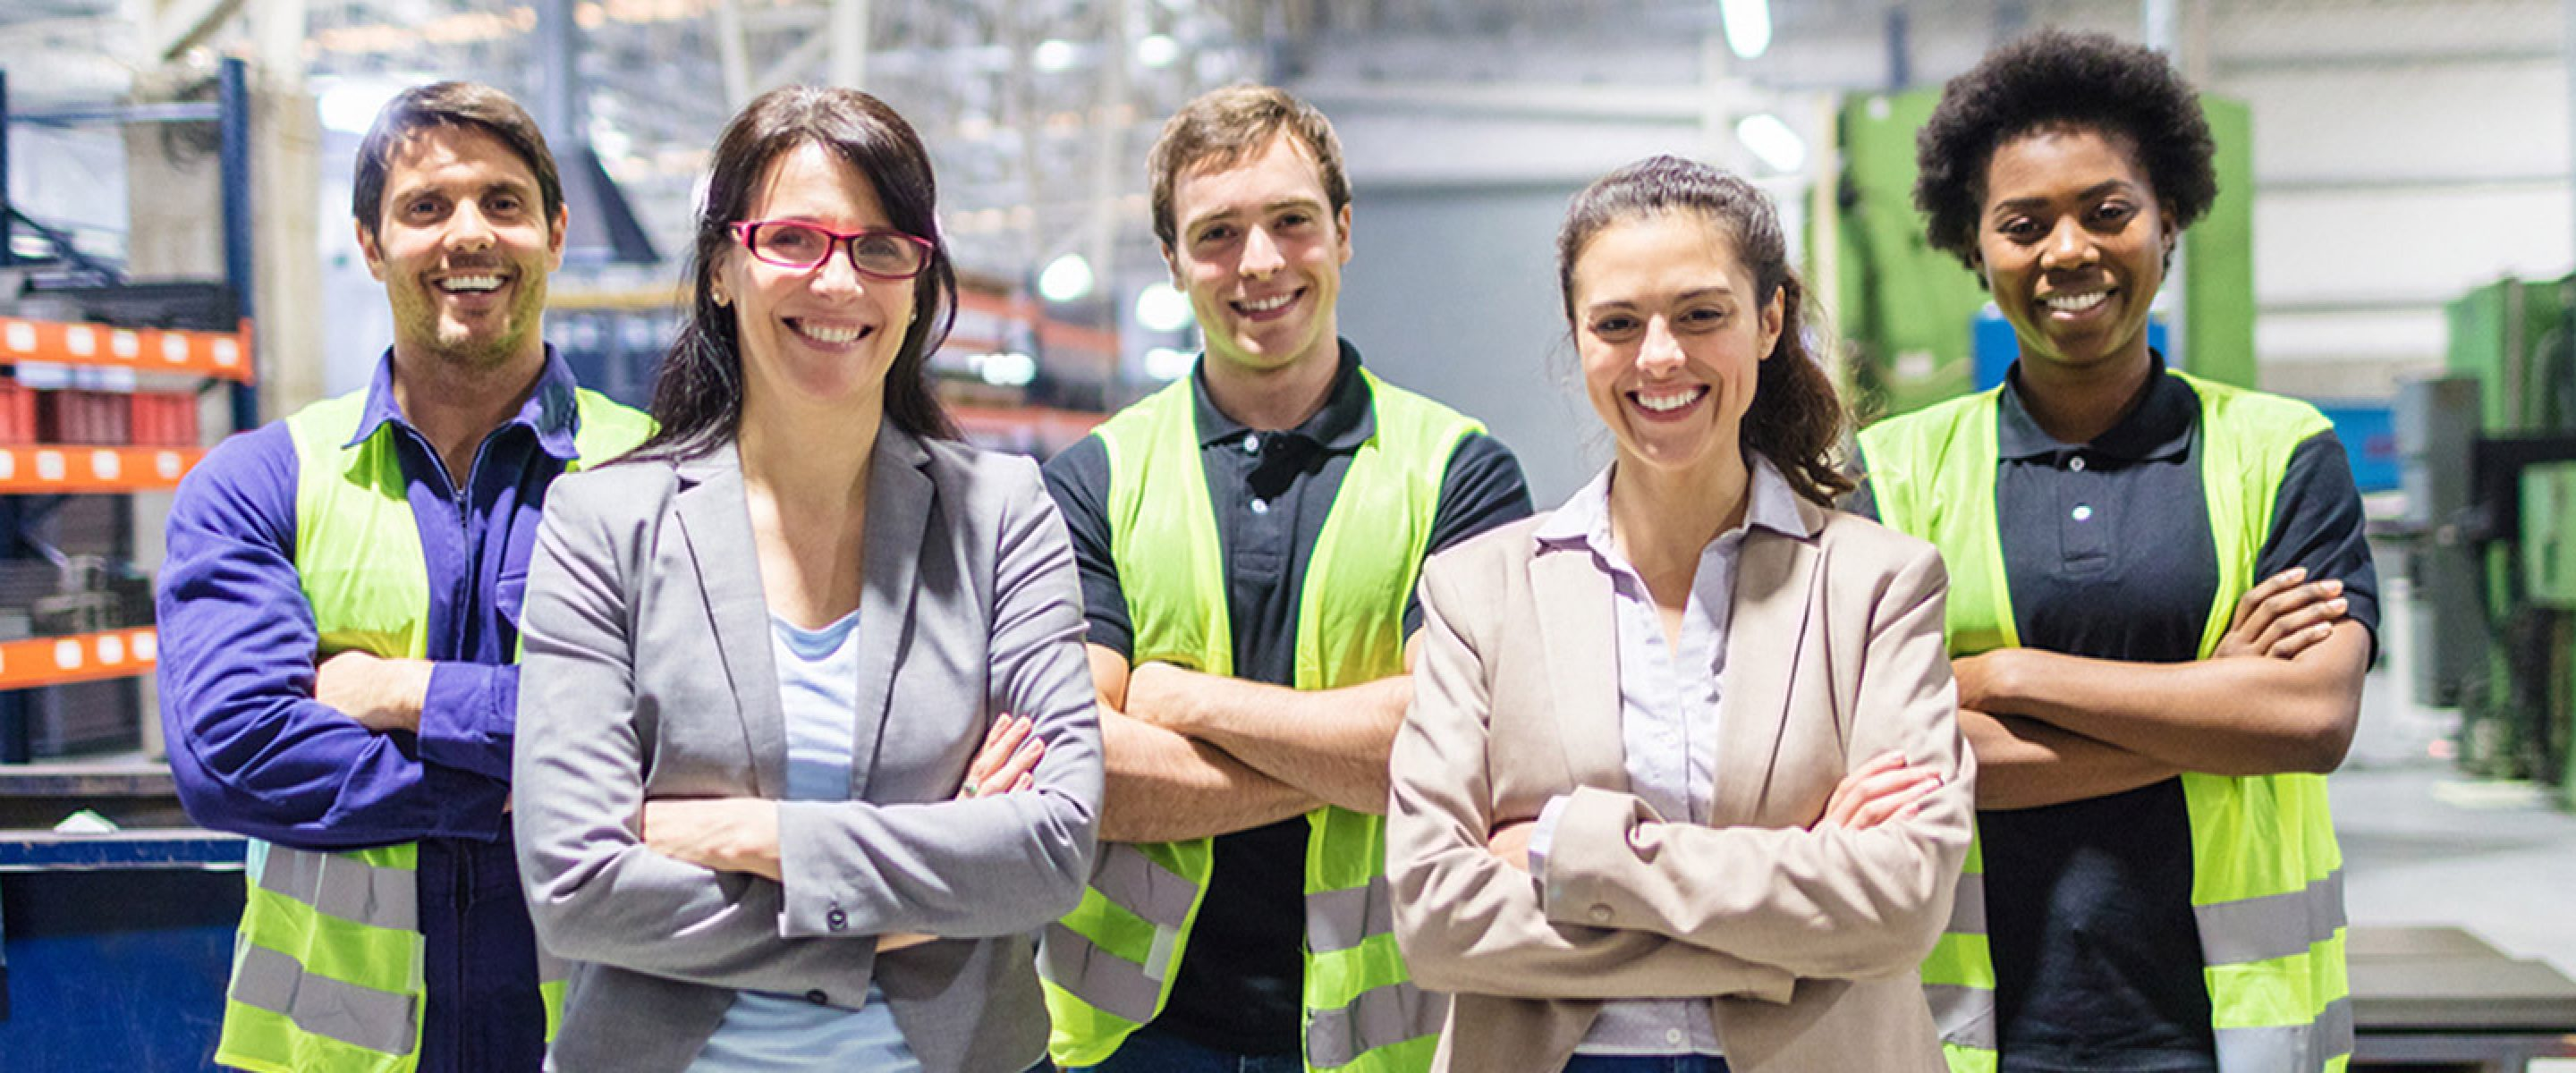 Two business women and three warehouse workers wearing safety vests smile in factory warehouse